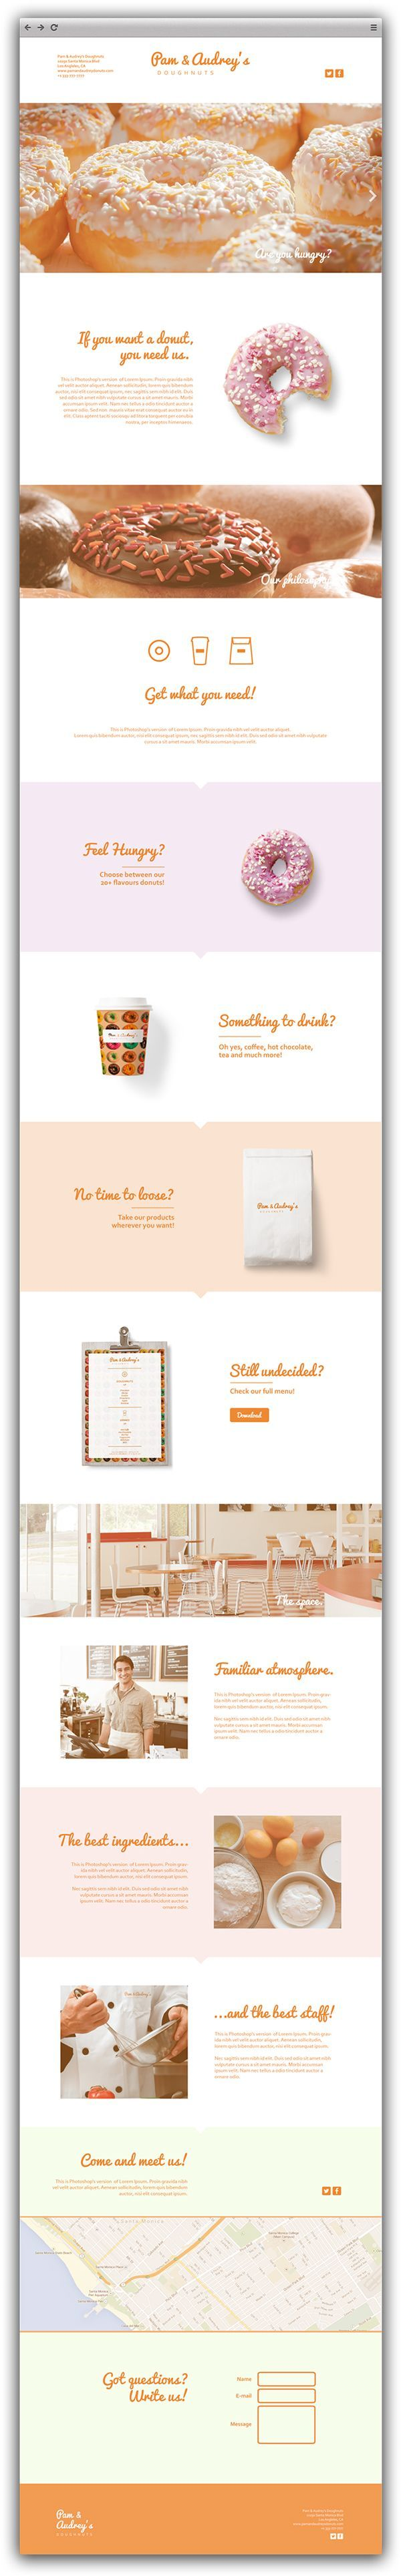 Pam & Audrey's Doughnuts - One Page Website Concept